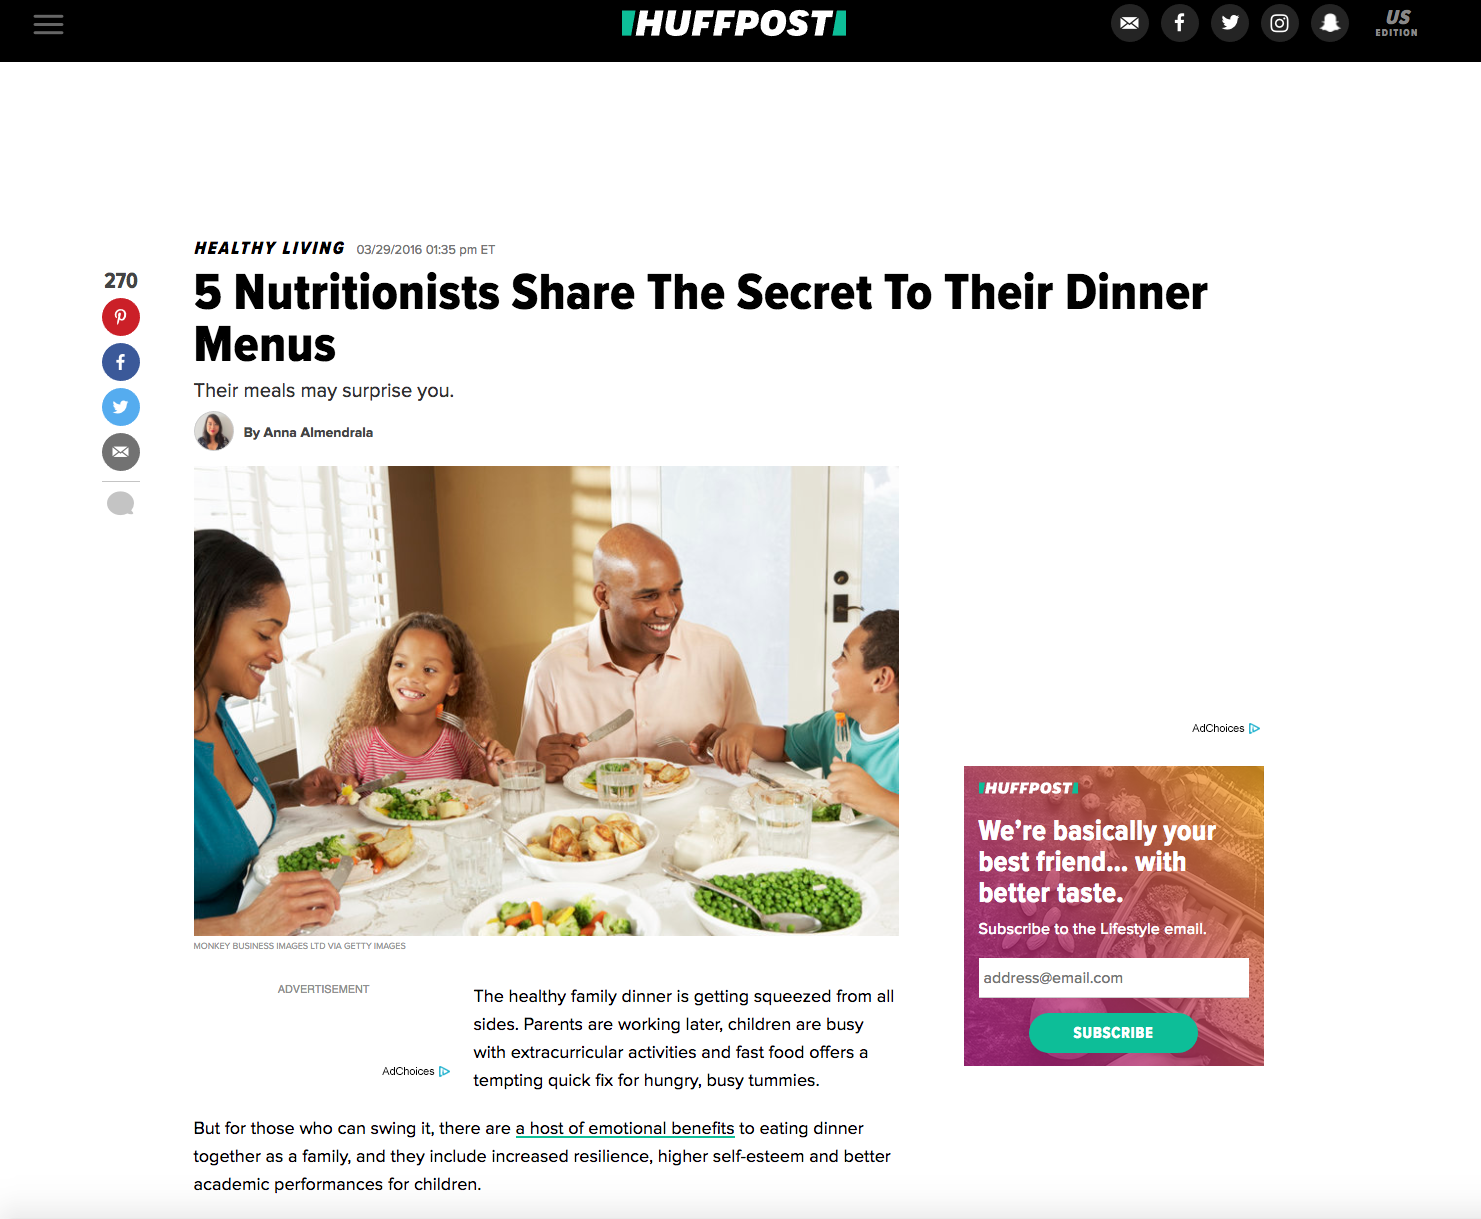 Huffington Post - Jonathan Valdez reveals his asian-fusion cuisine consumed at dinner.http://www.huffingtonpost.com/entry/five-nutritionists-share-what-inspires-their-dinner-menus_us_56f9b274e4b0a372181acbda